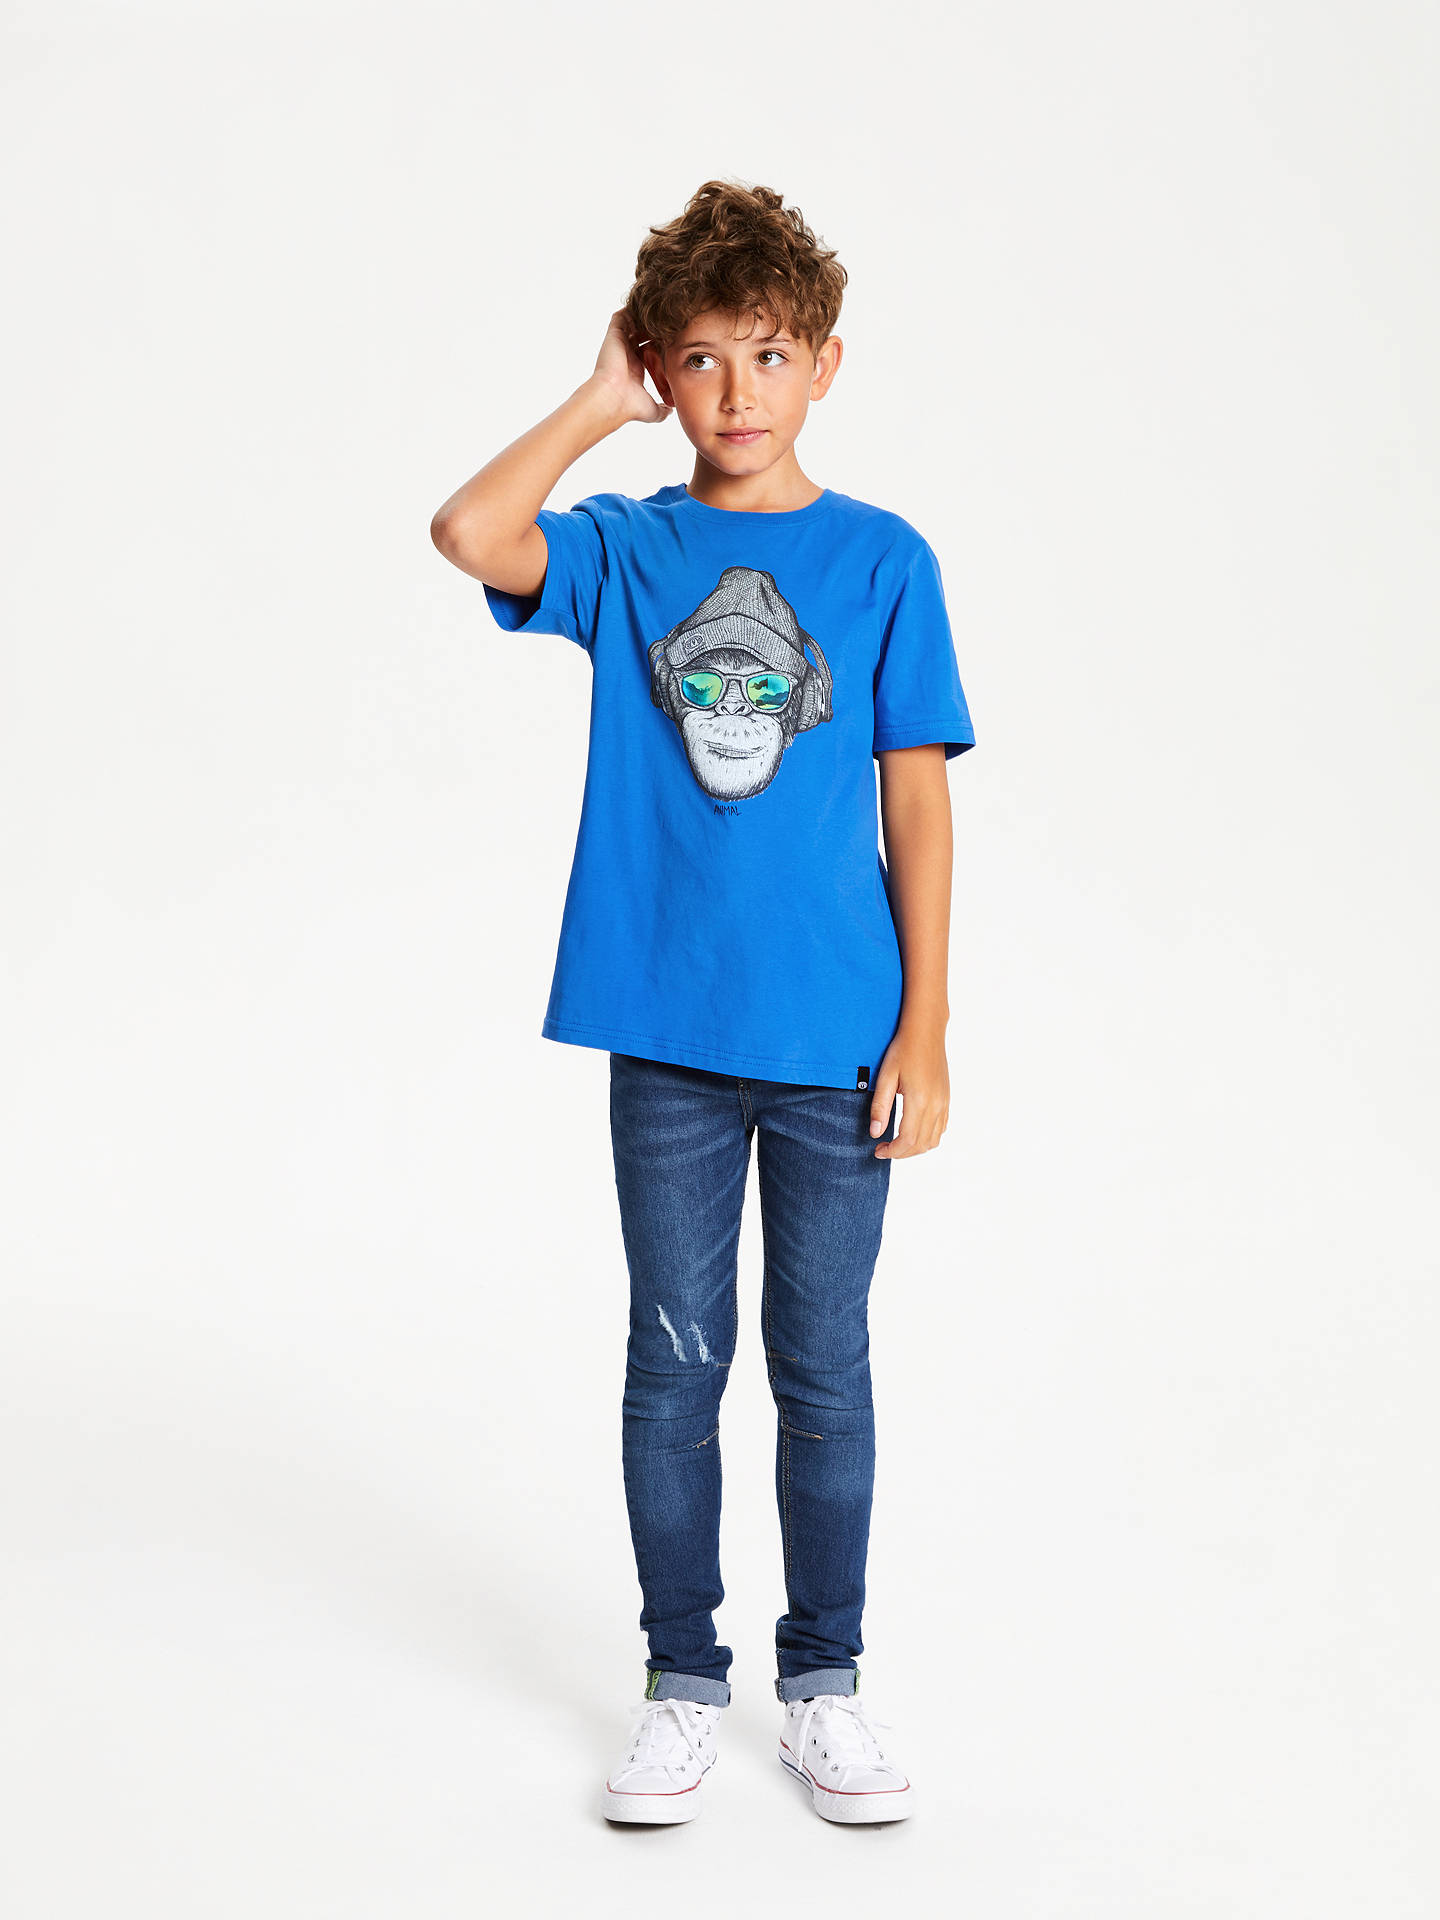 Buy Animal Boys' Chimp Graphic T-Shirt, Blue, 7-8 years Online at johnlewis.com